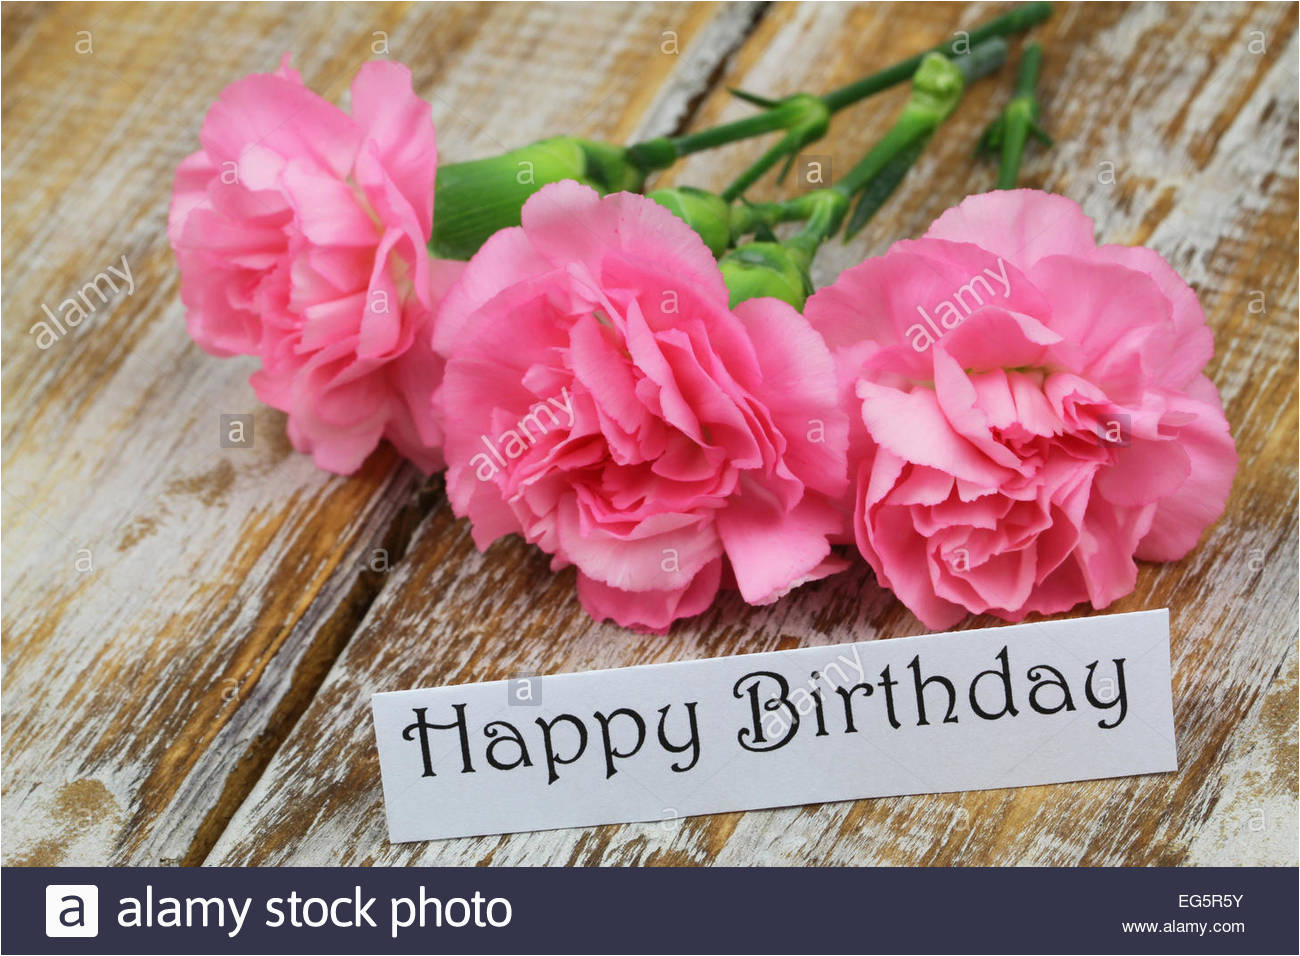 happy birthday card with pink carnation flowers stock